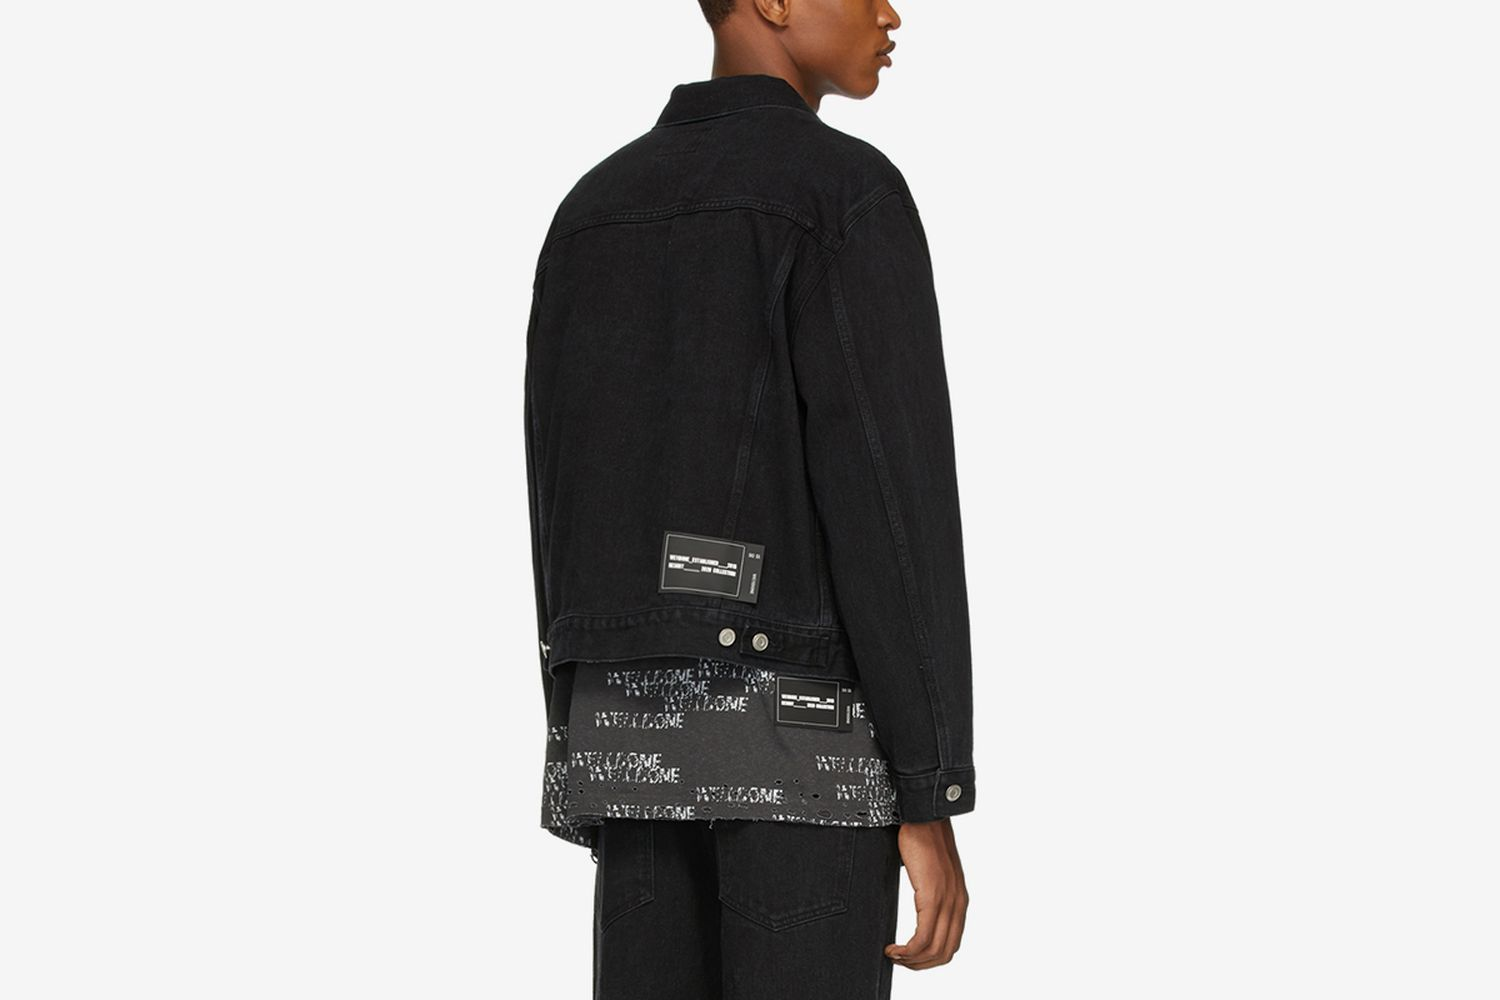 SSENSE Exclusive Denim Incomplete Jacket